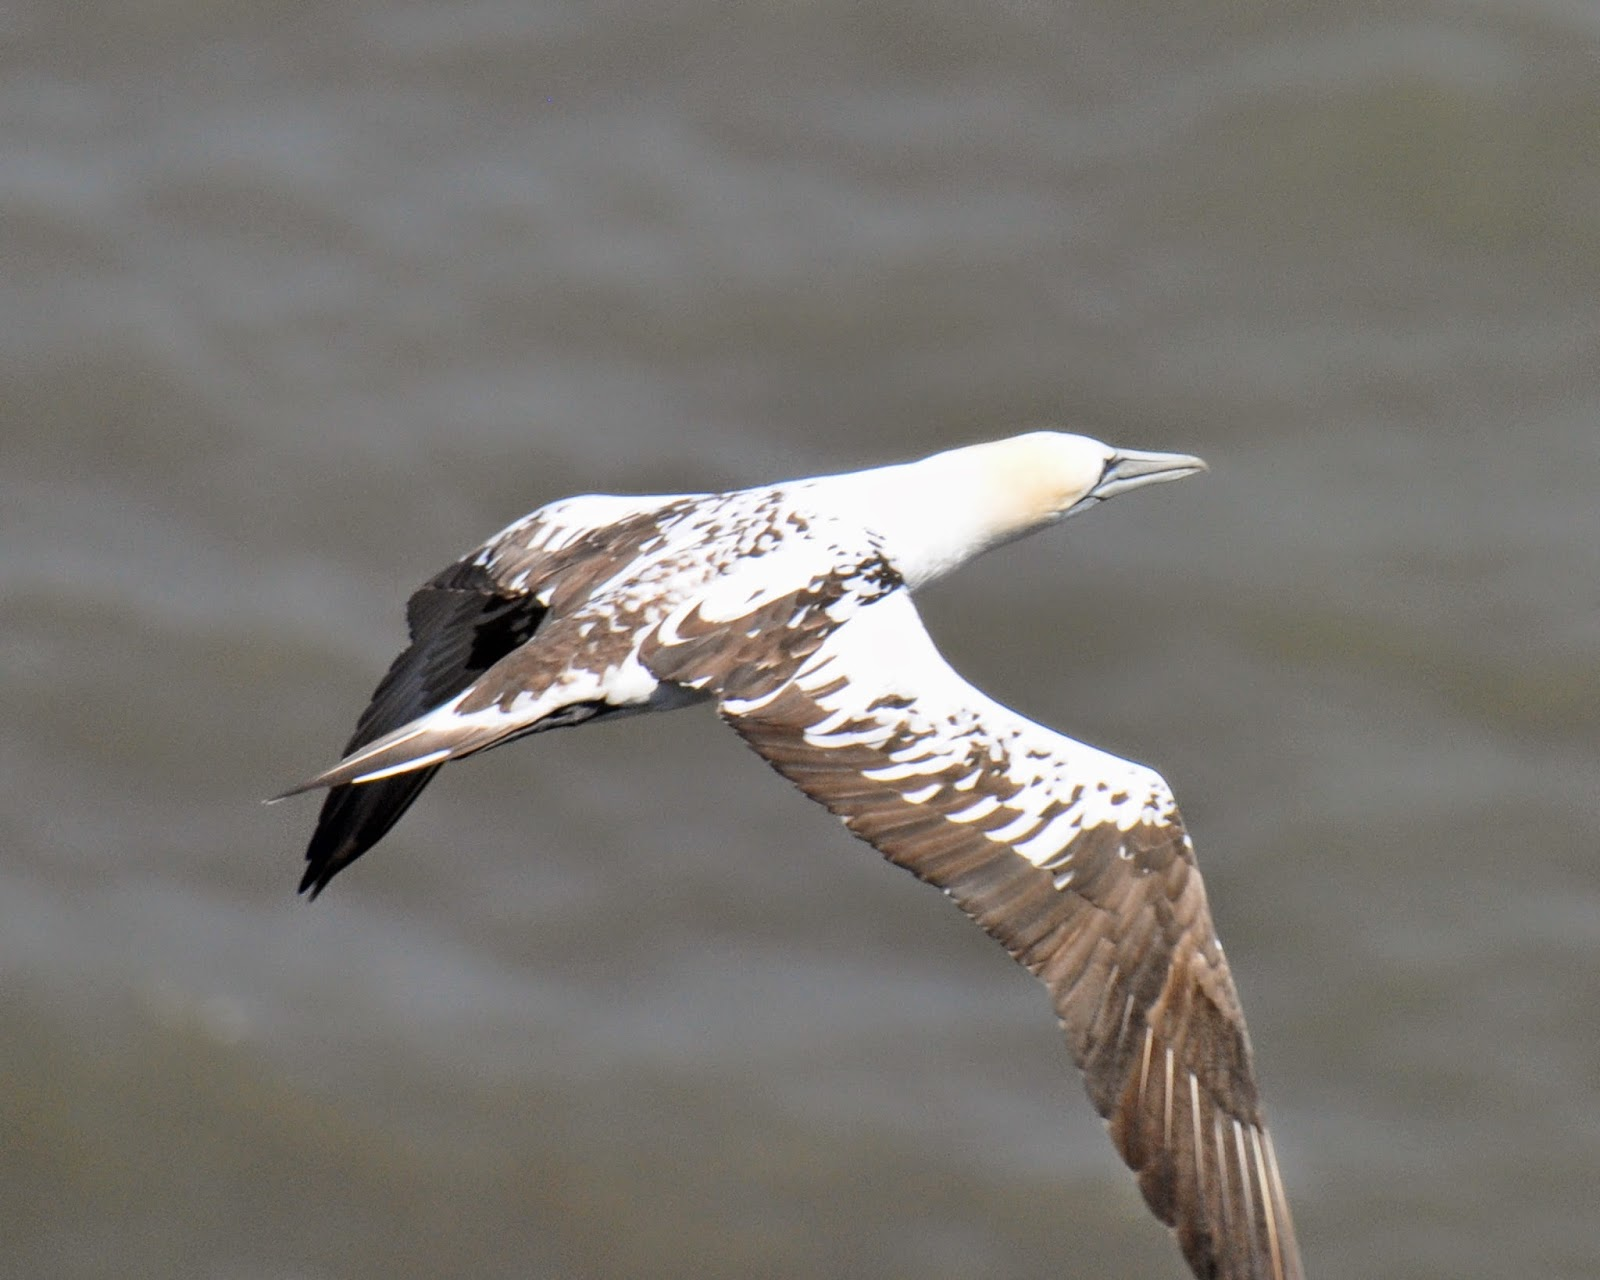 juvenile gannet in flight aged 3 years old